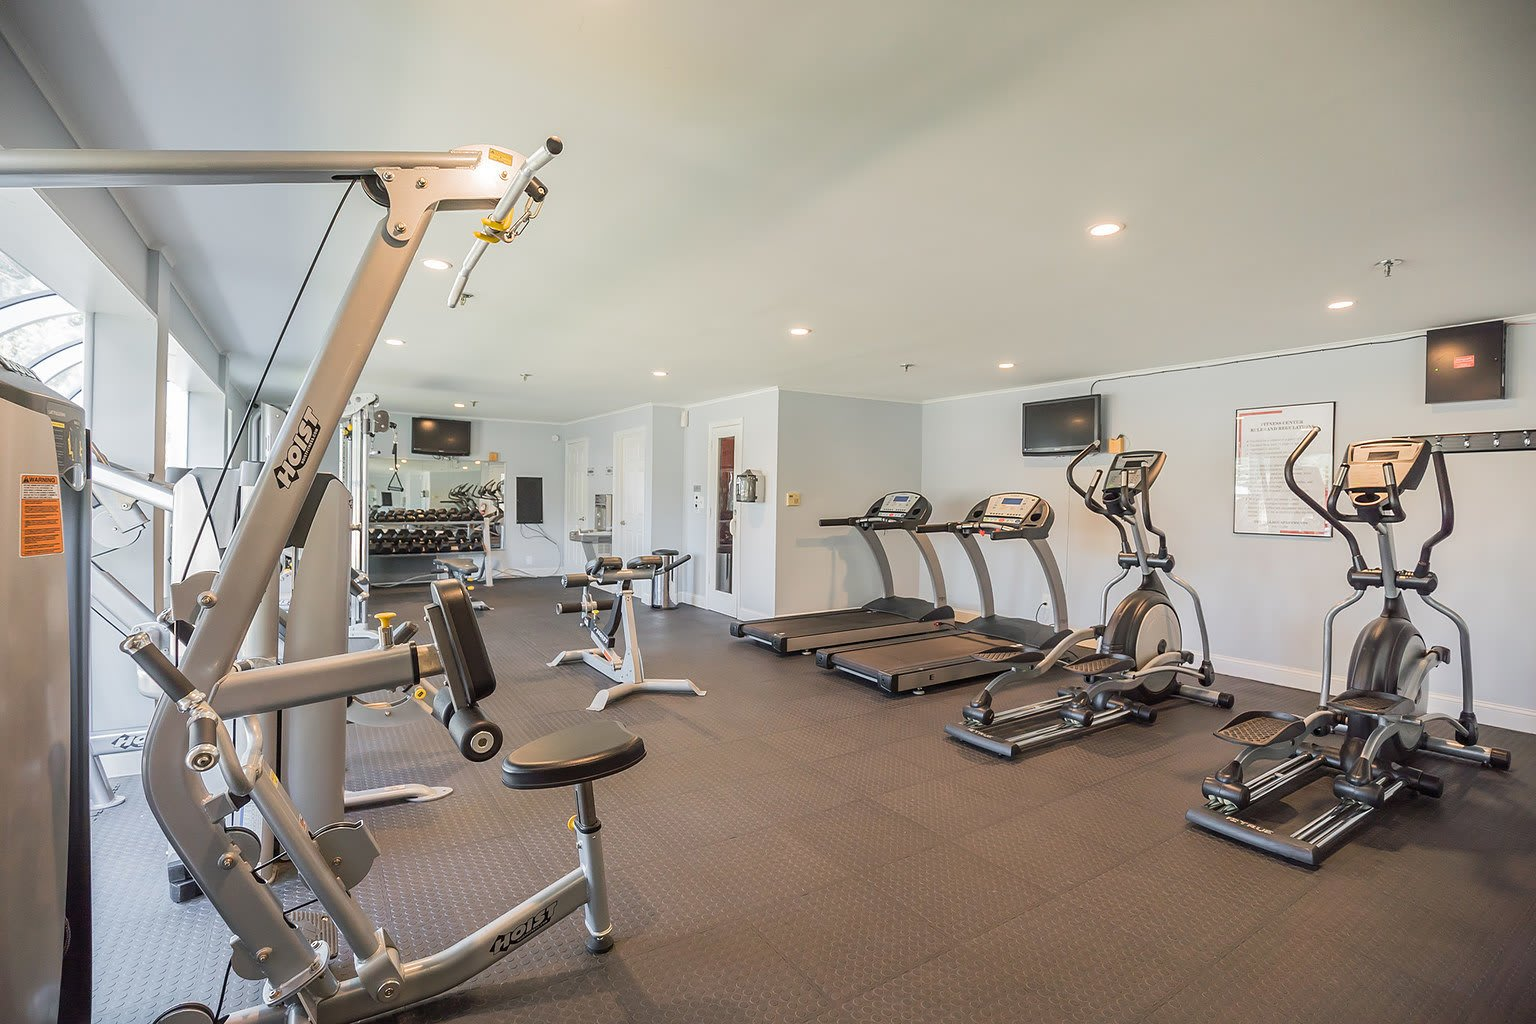 Fitness Center At Our Apartments In Voorhees